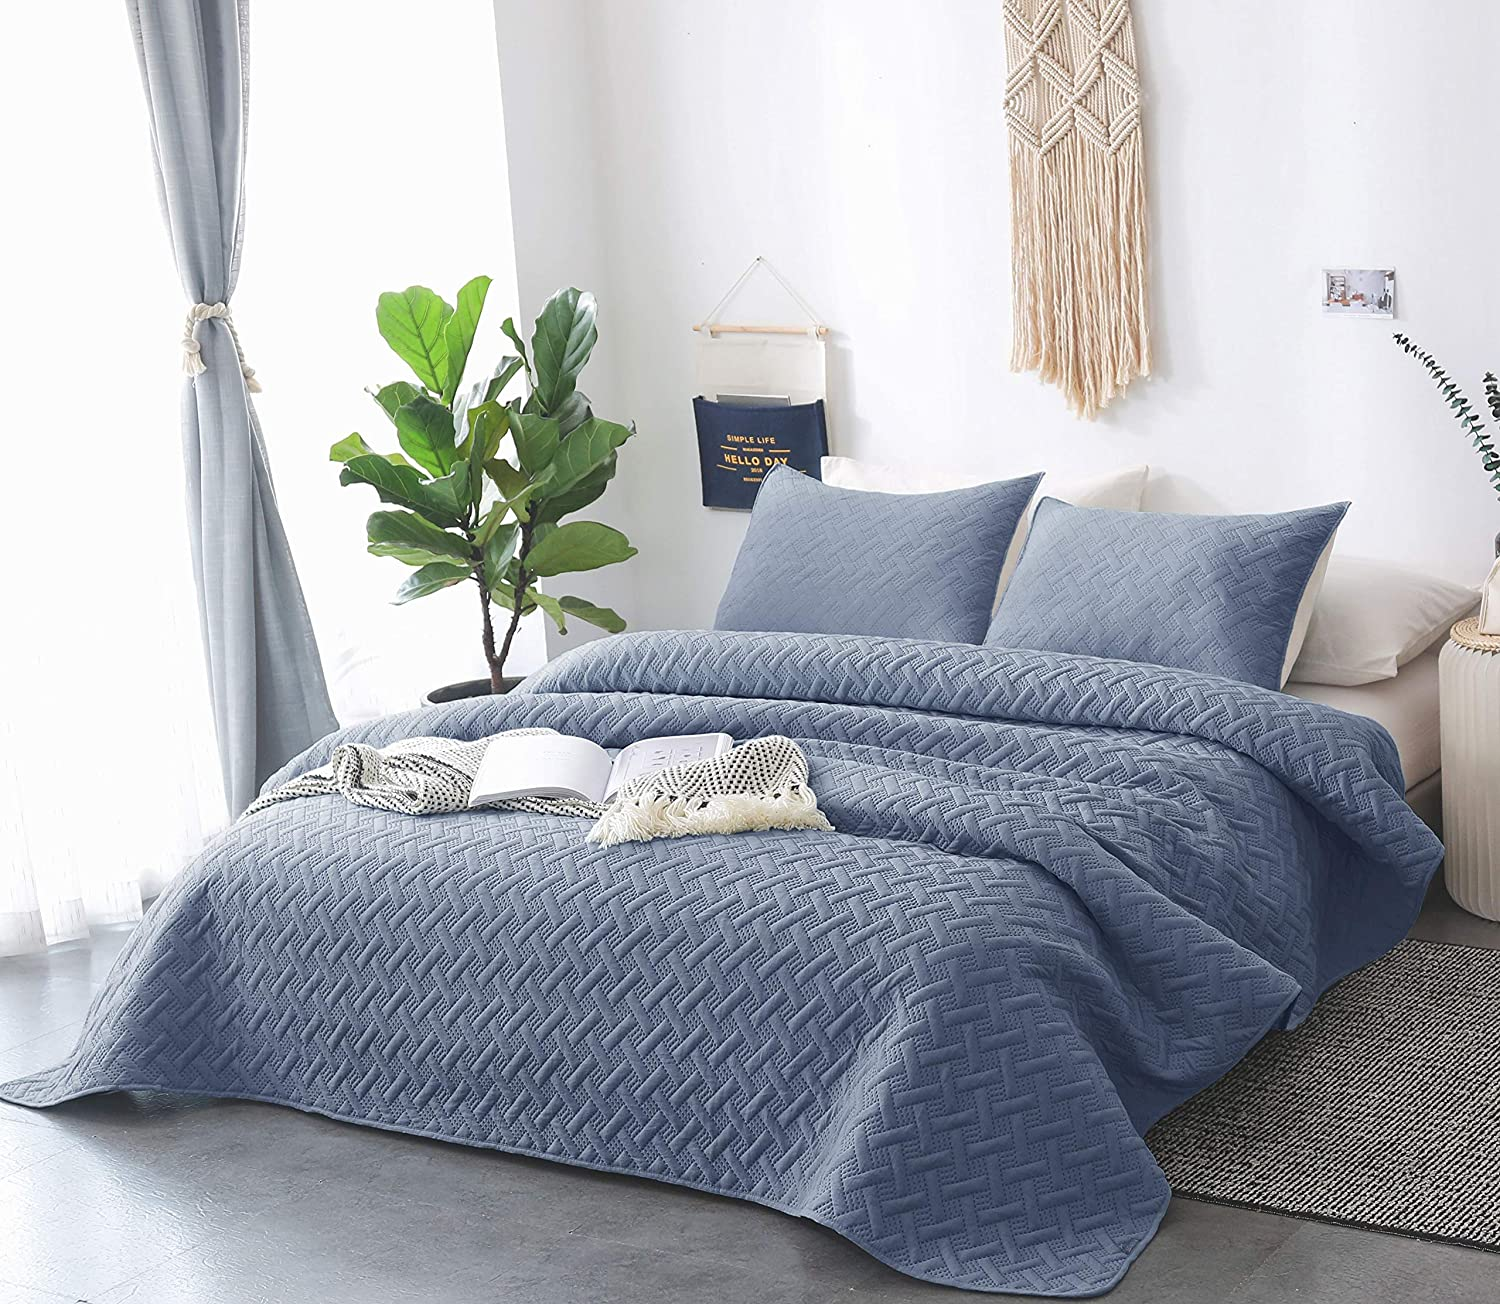 DAWNDIOR Bedding Quilt Sets,Multipurpose As Bedspread and Thin Comforter  with 5 Shams,Popular Heat Pattern Design and Solid Color(Queen)